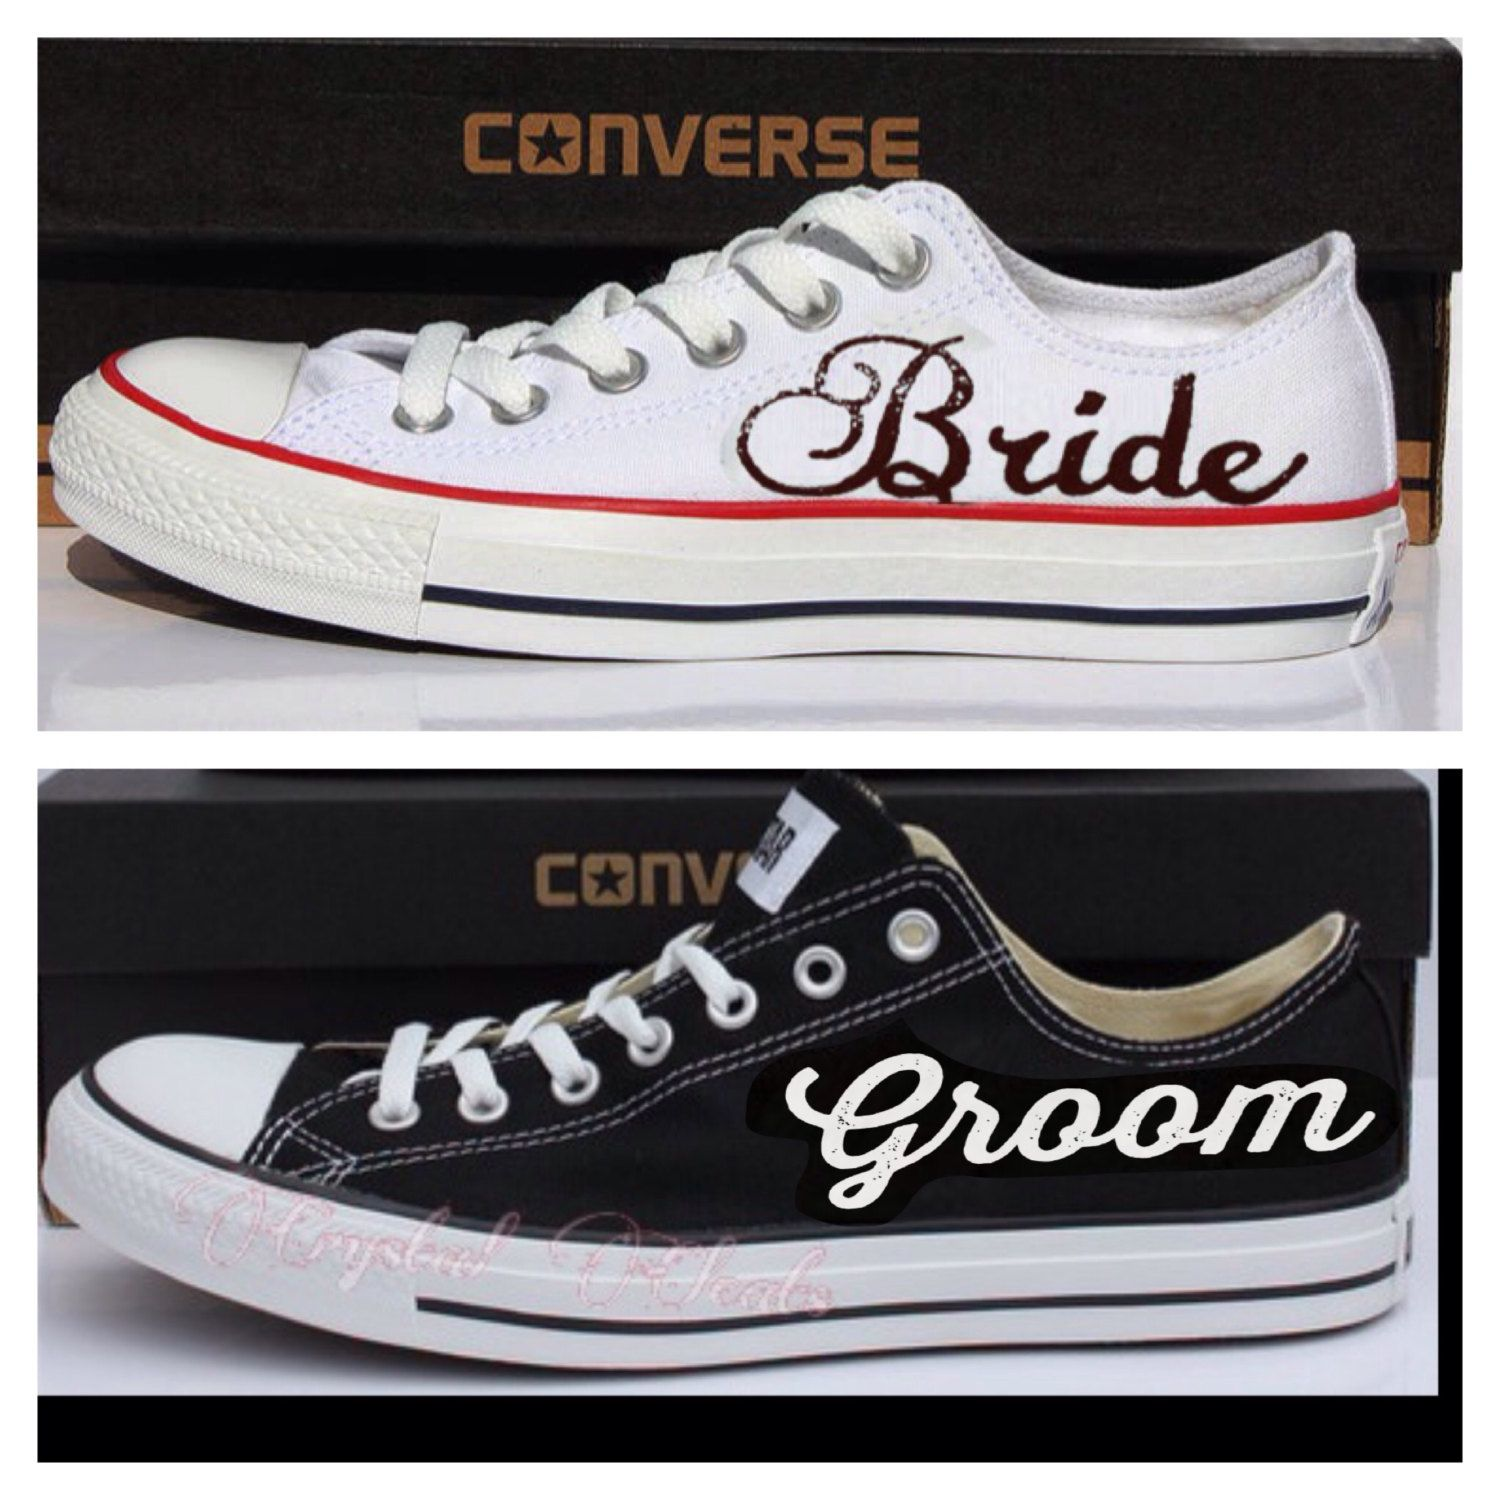 2 Pairs Bride And Groom Black White Converse All Star Chucks Sneakers Tennis Shoes Hand